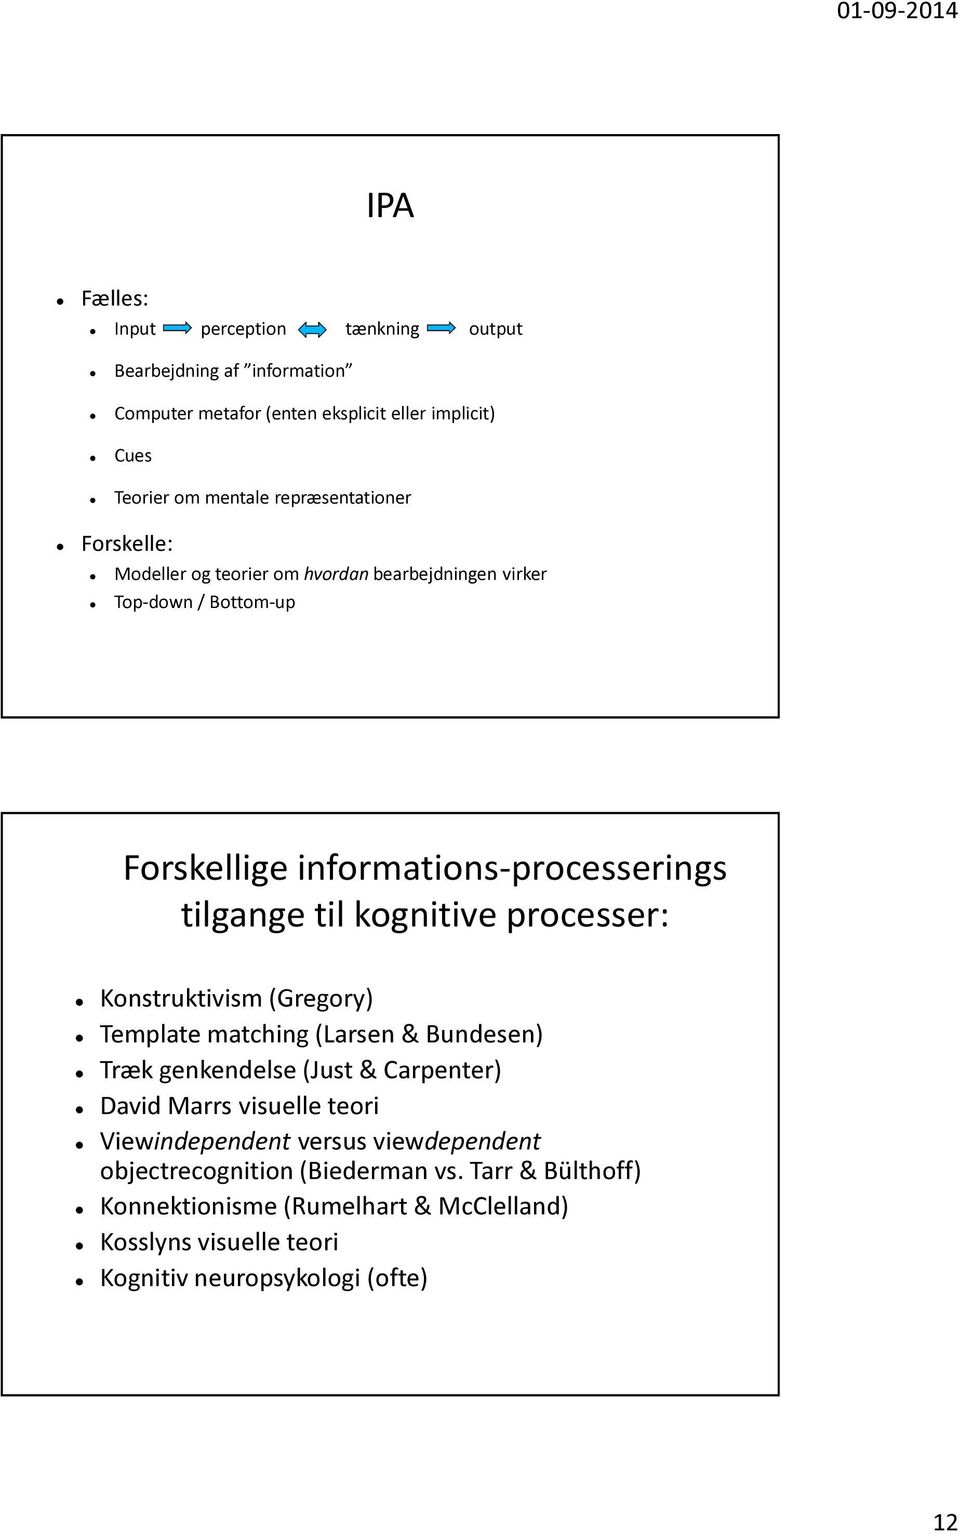 kognitive processer: Konstruktivism (Gregory) Template matching (Larsen & Bundesen) Træk genkendelse (Just & Carpenter) David Marrs visuelle teori